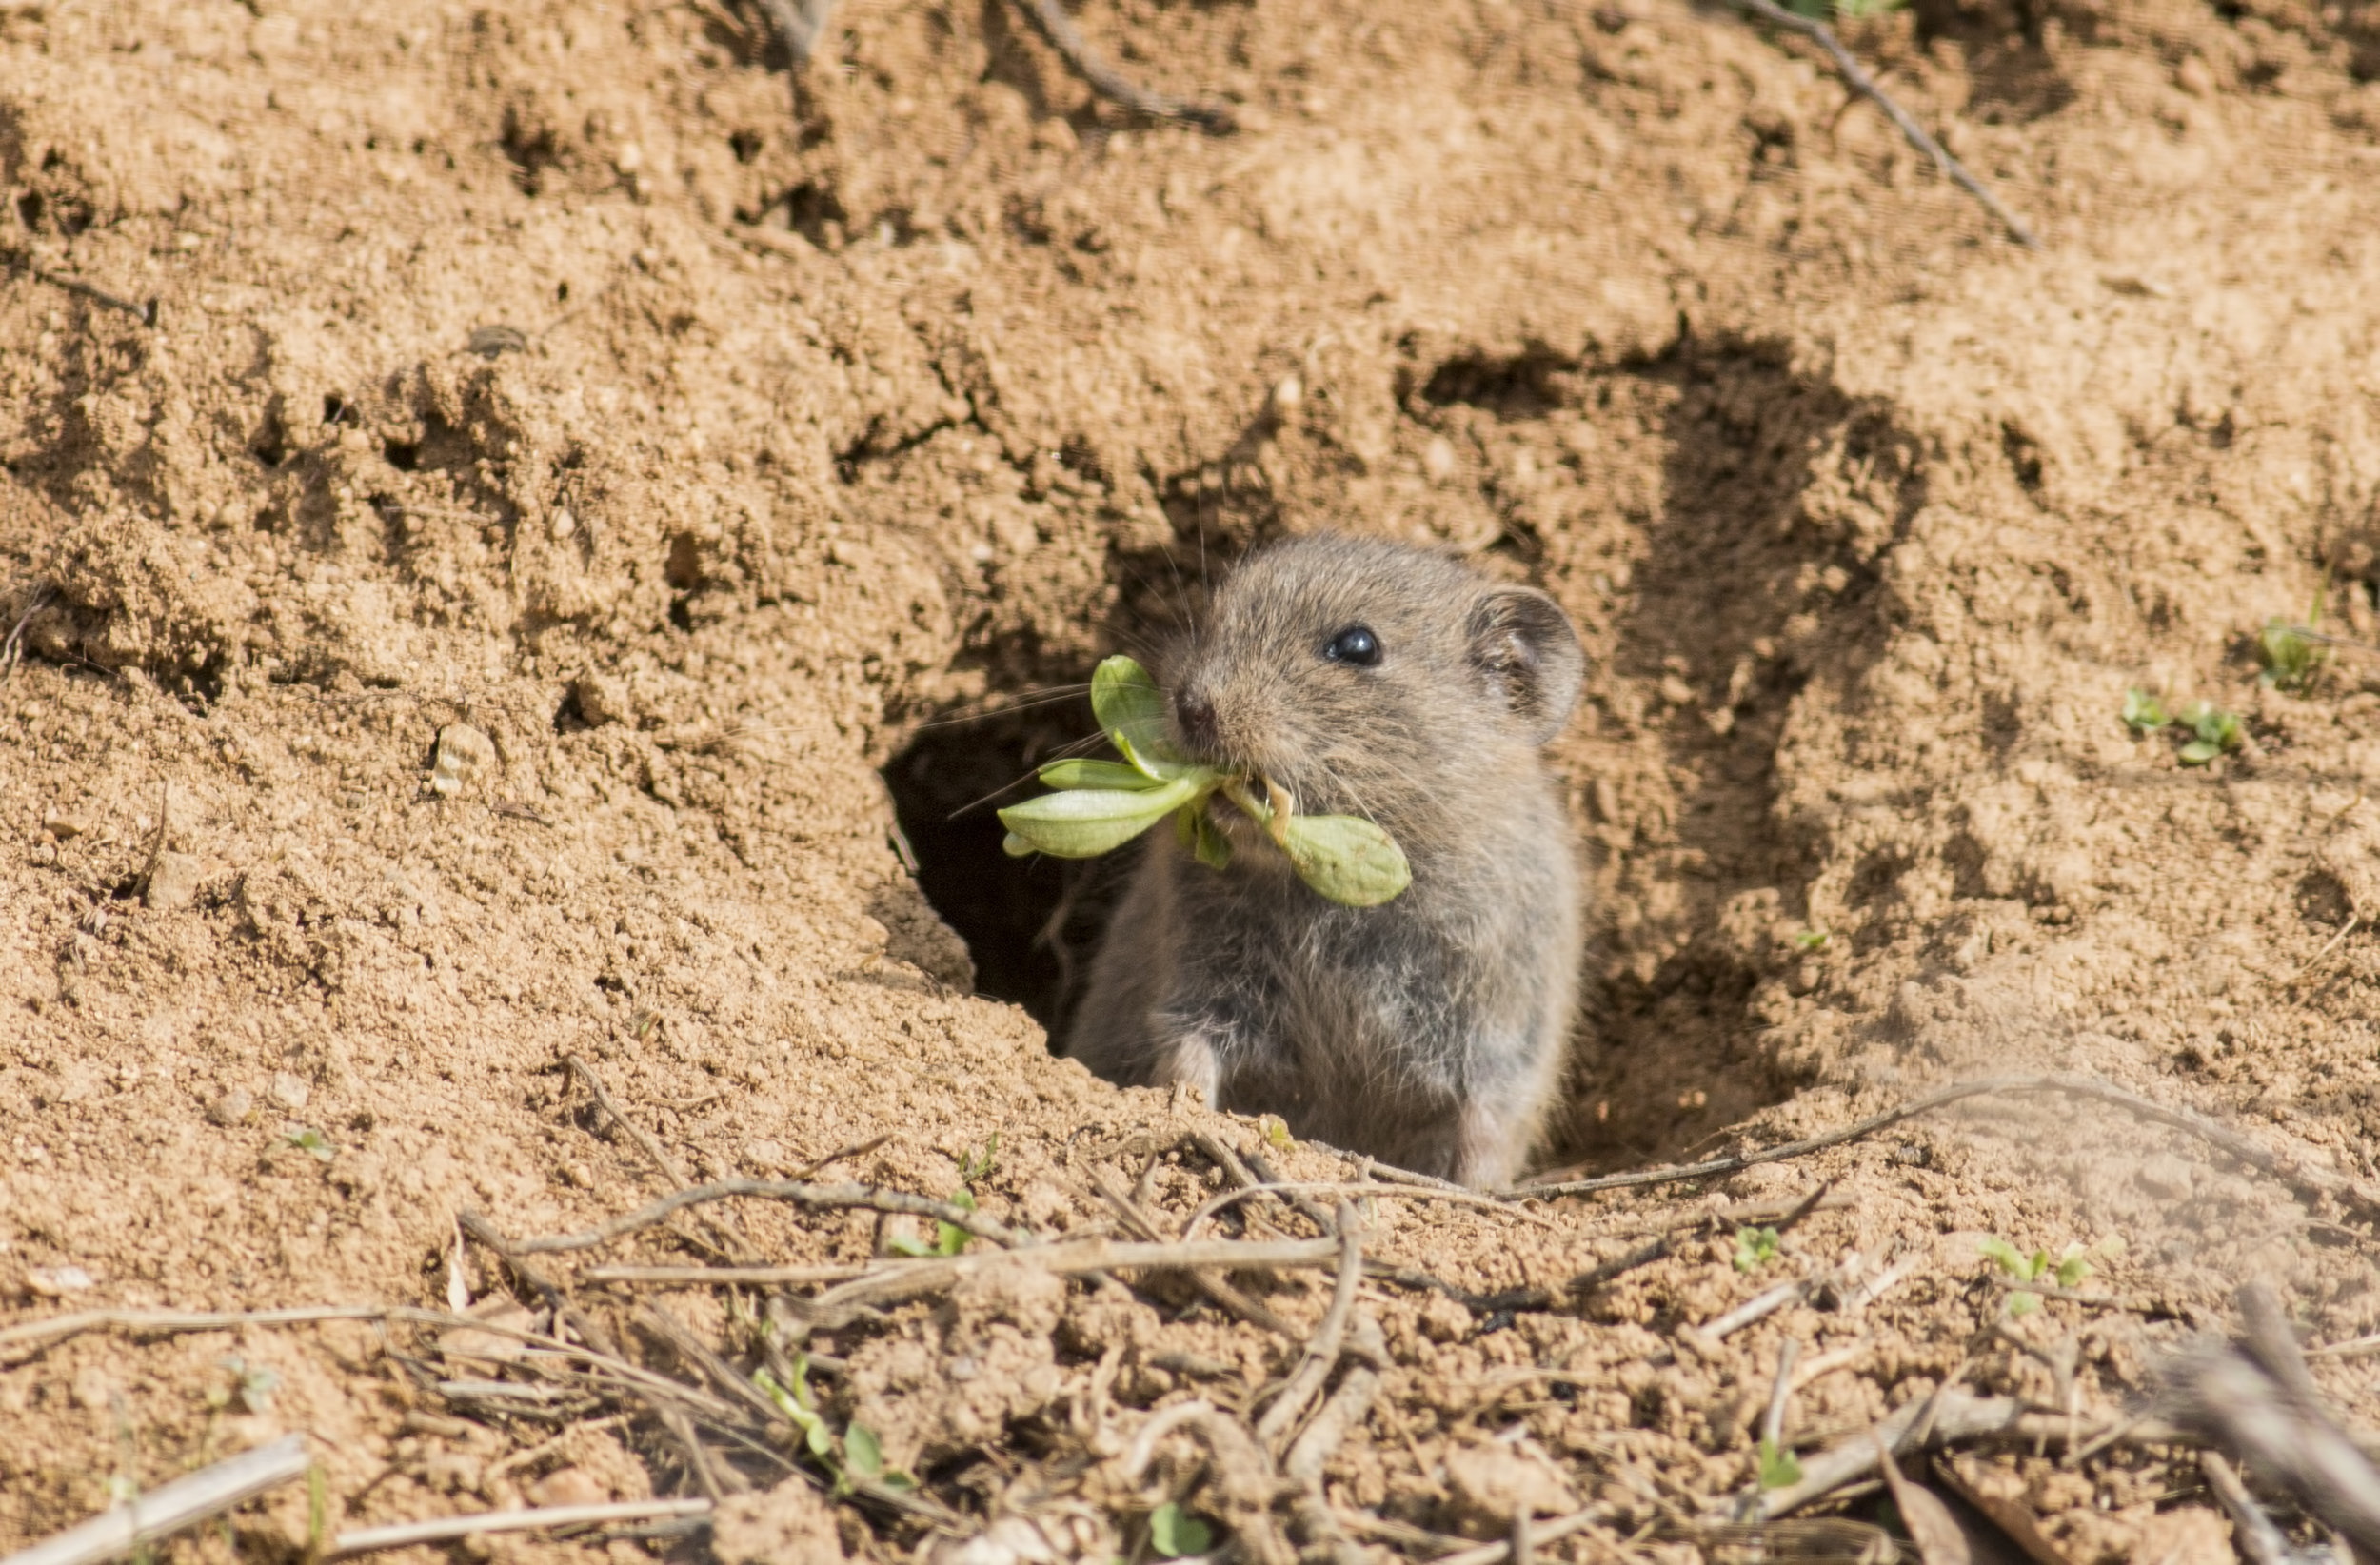 Voles look very much like mice that love to eat your garden treasures.